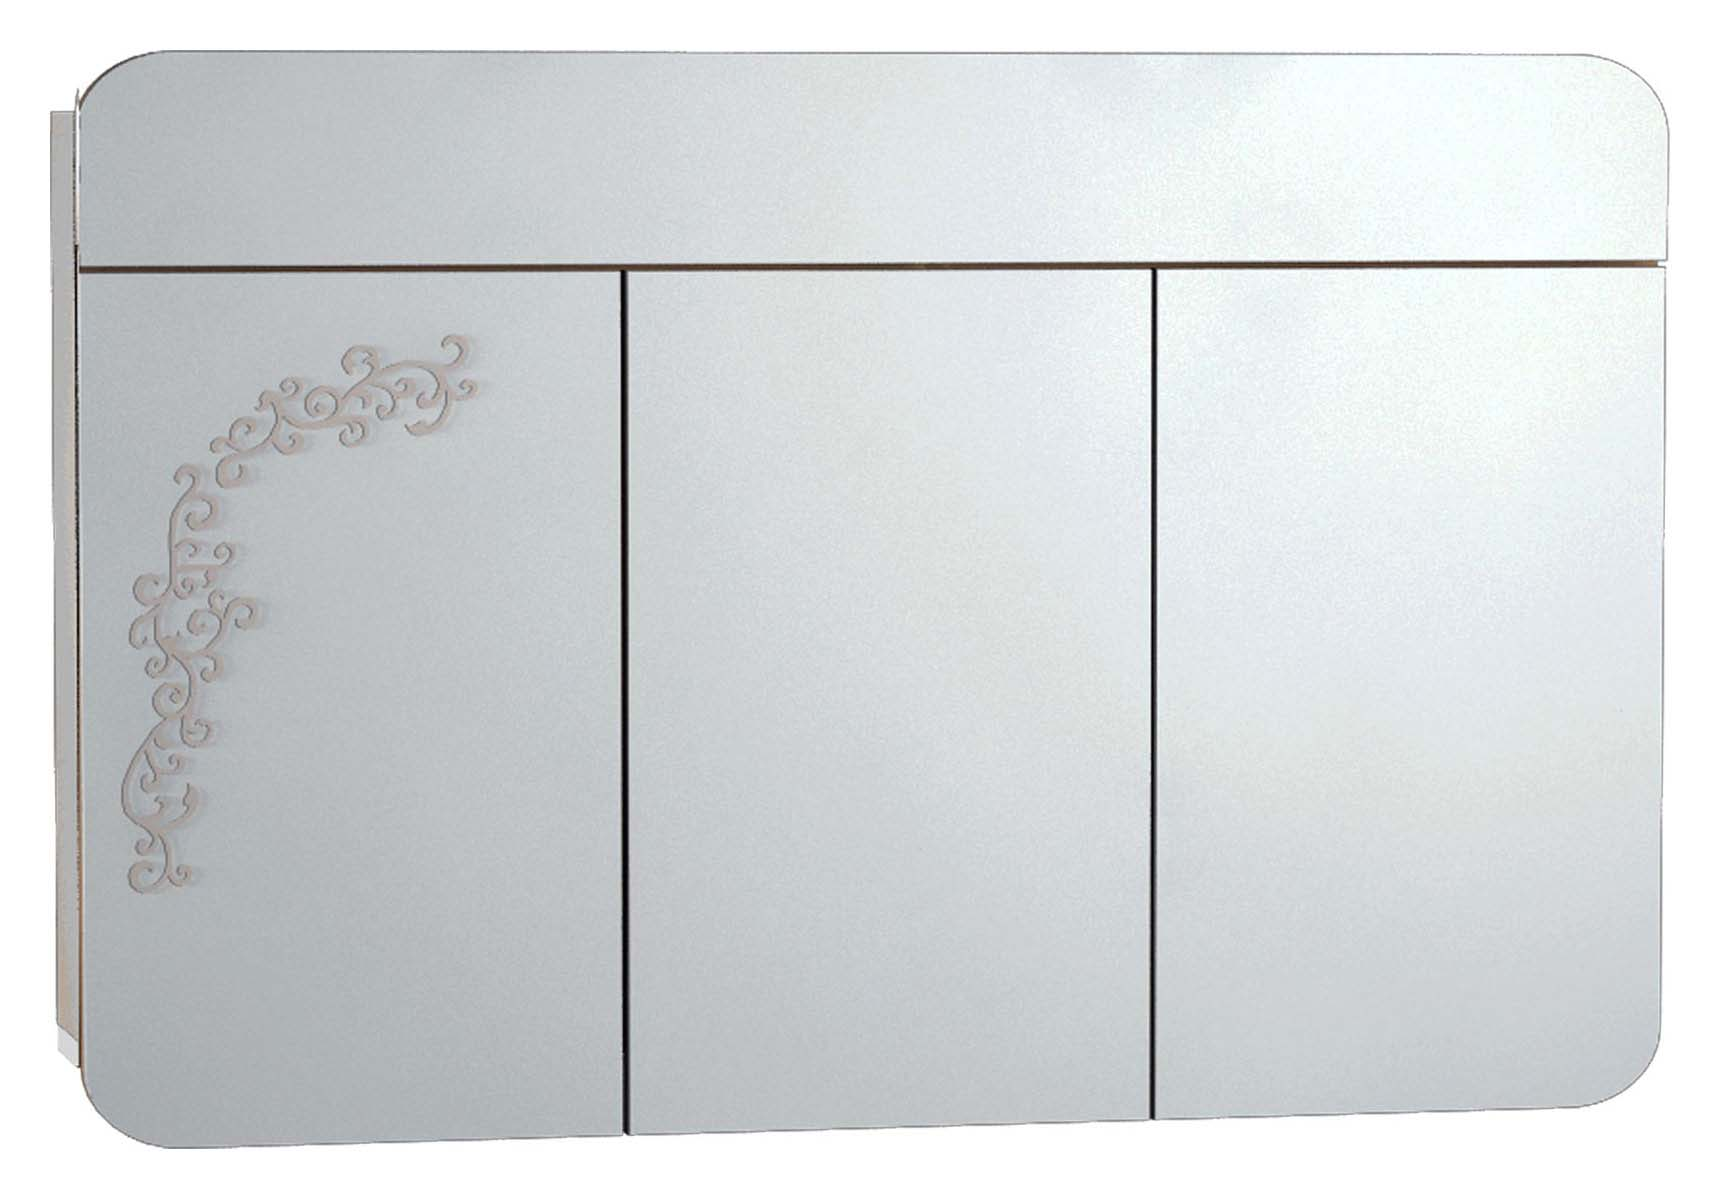 Gala Classic Illuminated Mirror with Pattern Cabinet 120 cm White High Gloss